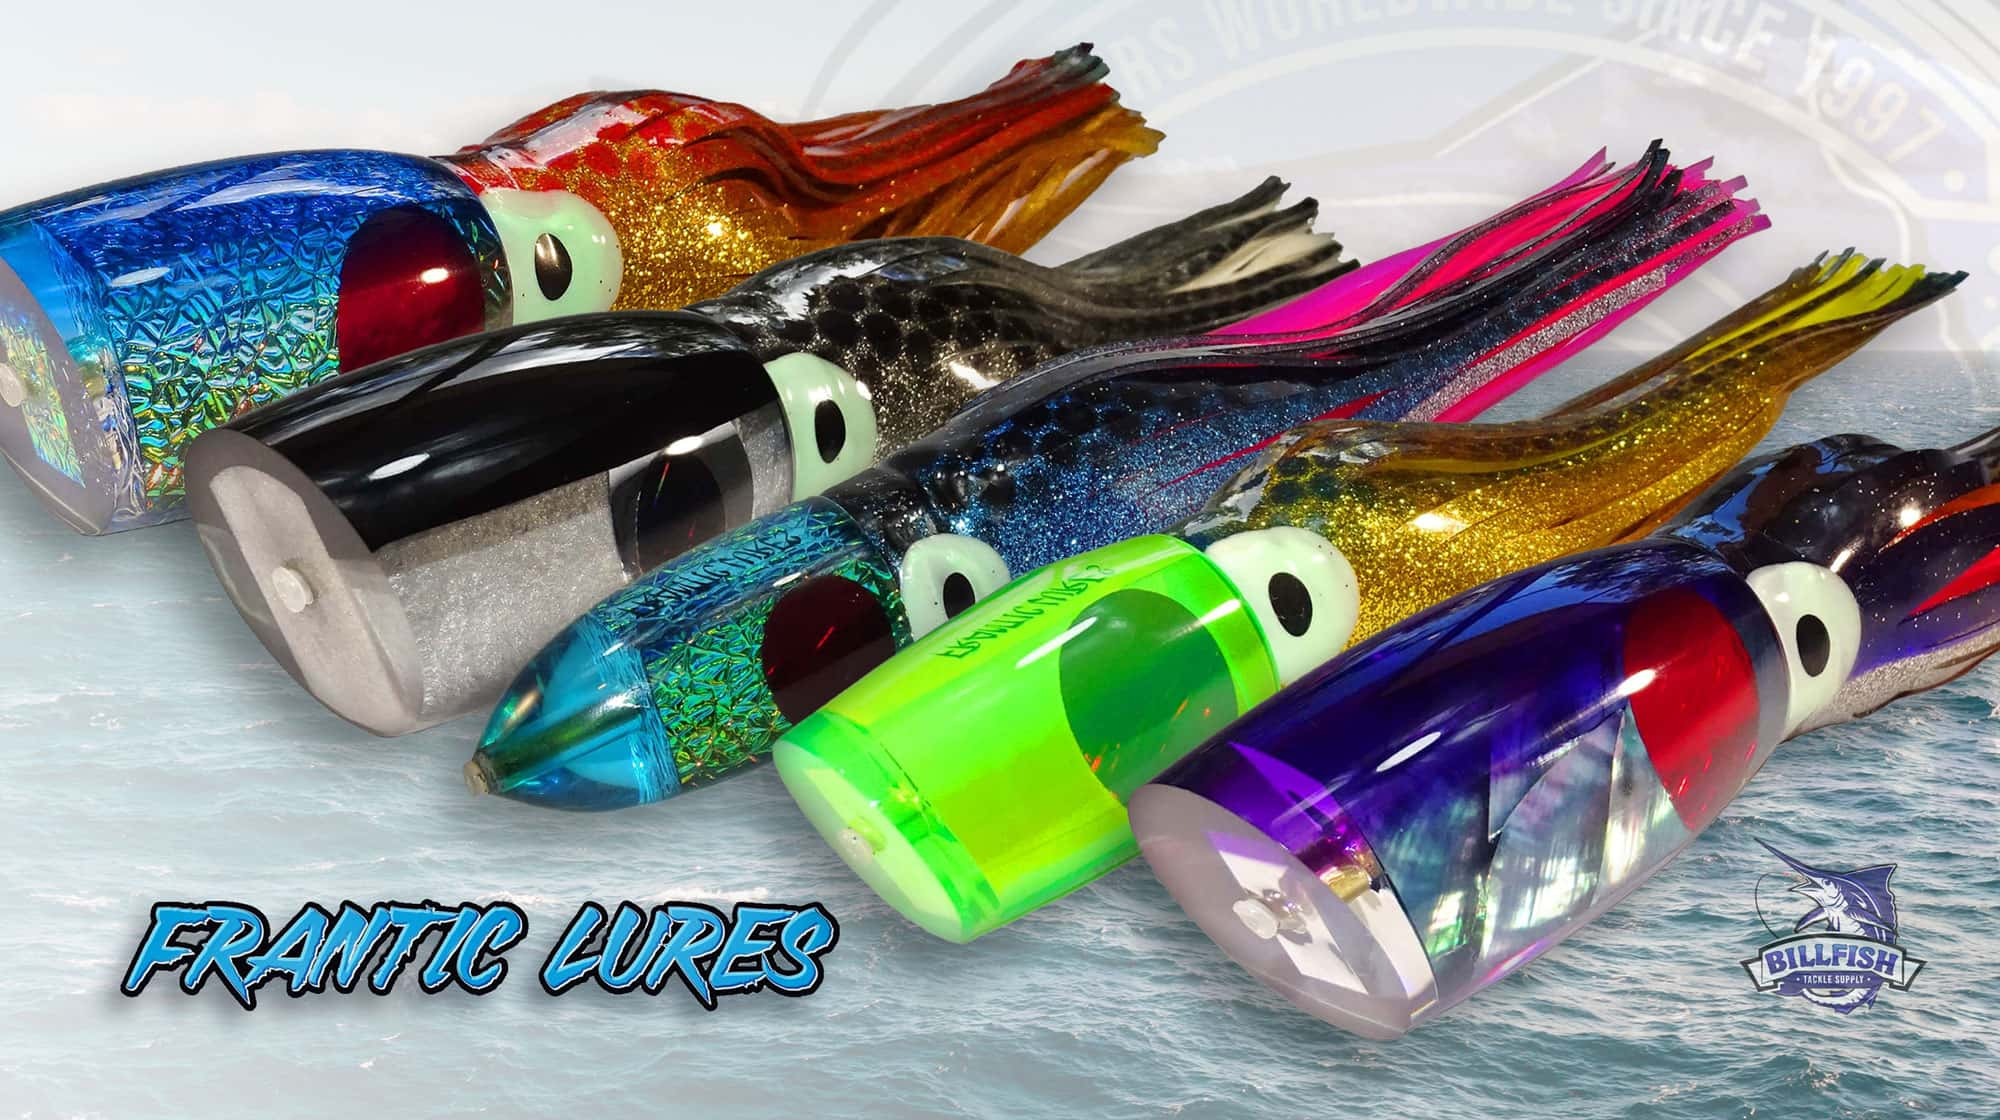 Best trolling lures for marlin -Frantic Lures - Chaos